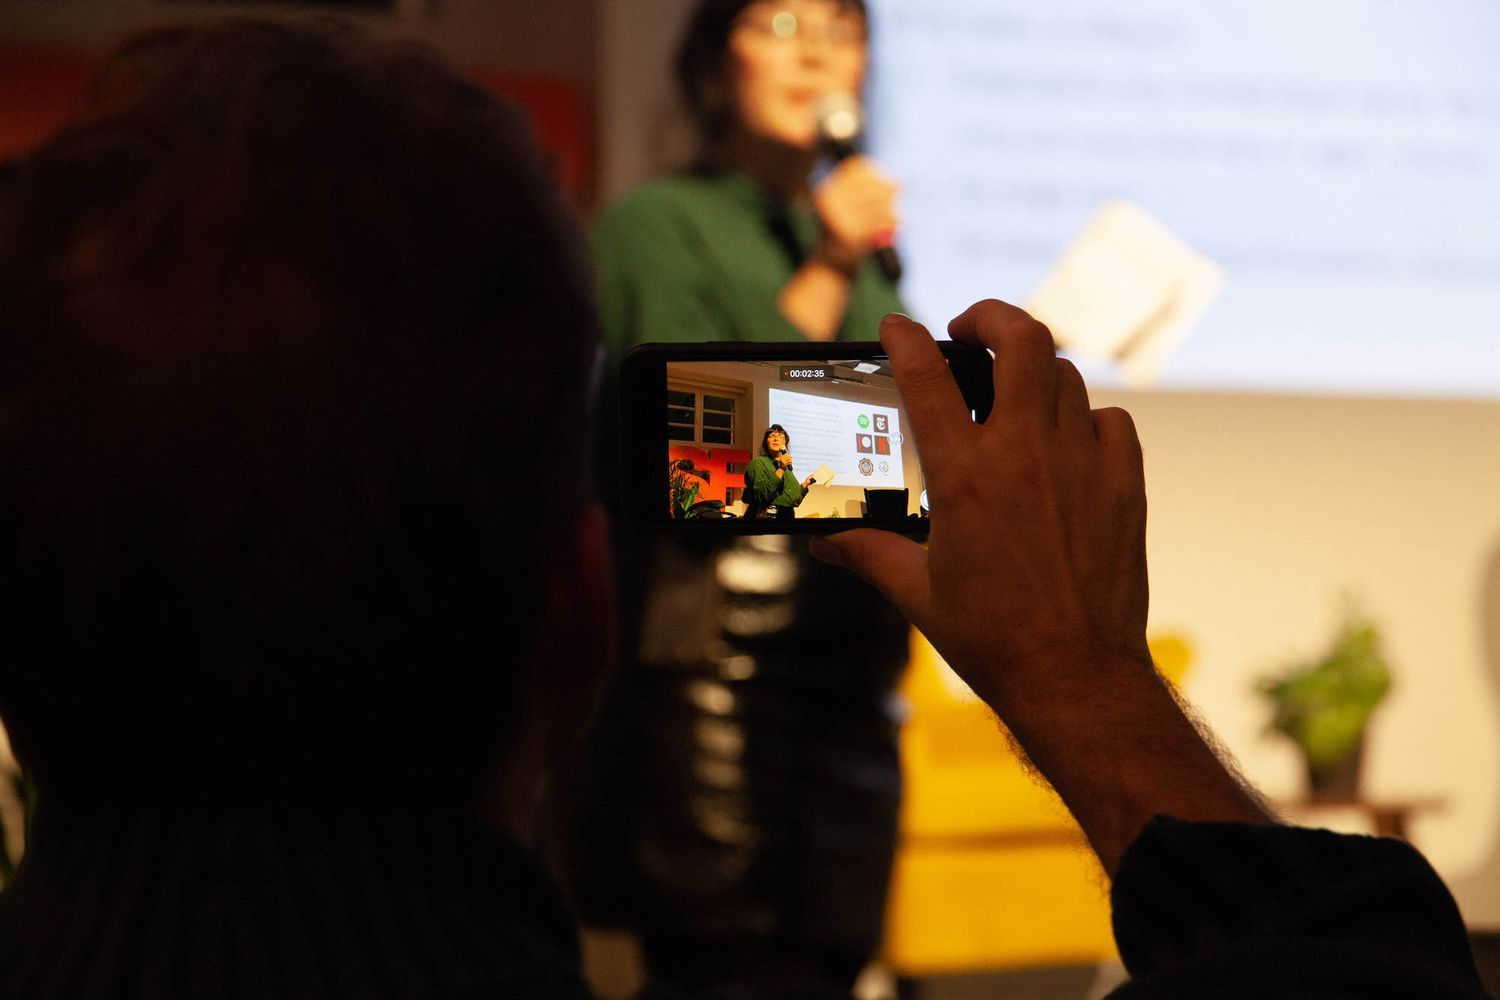 A person taking photos on the N3XTCODER meetup